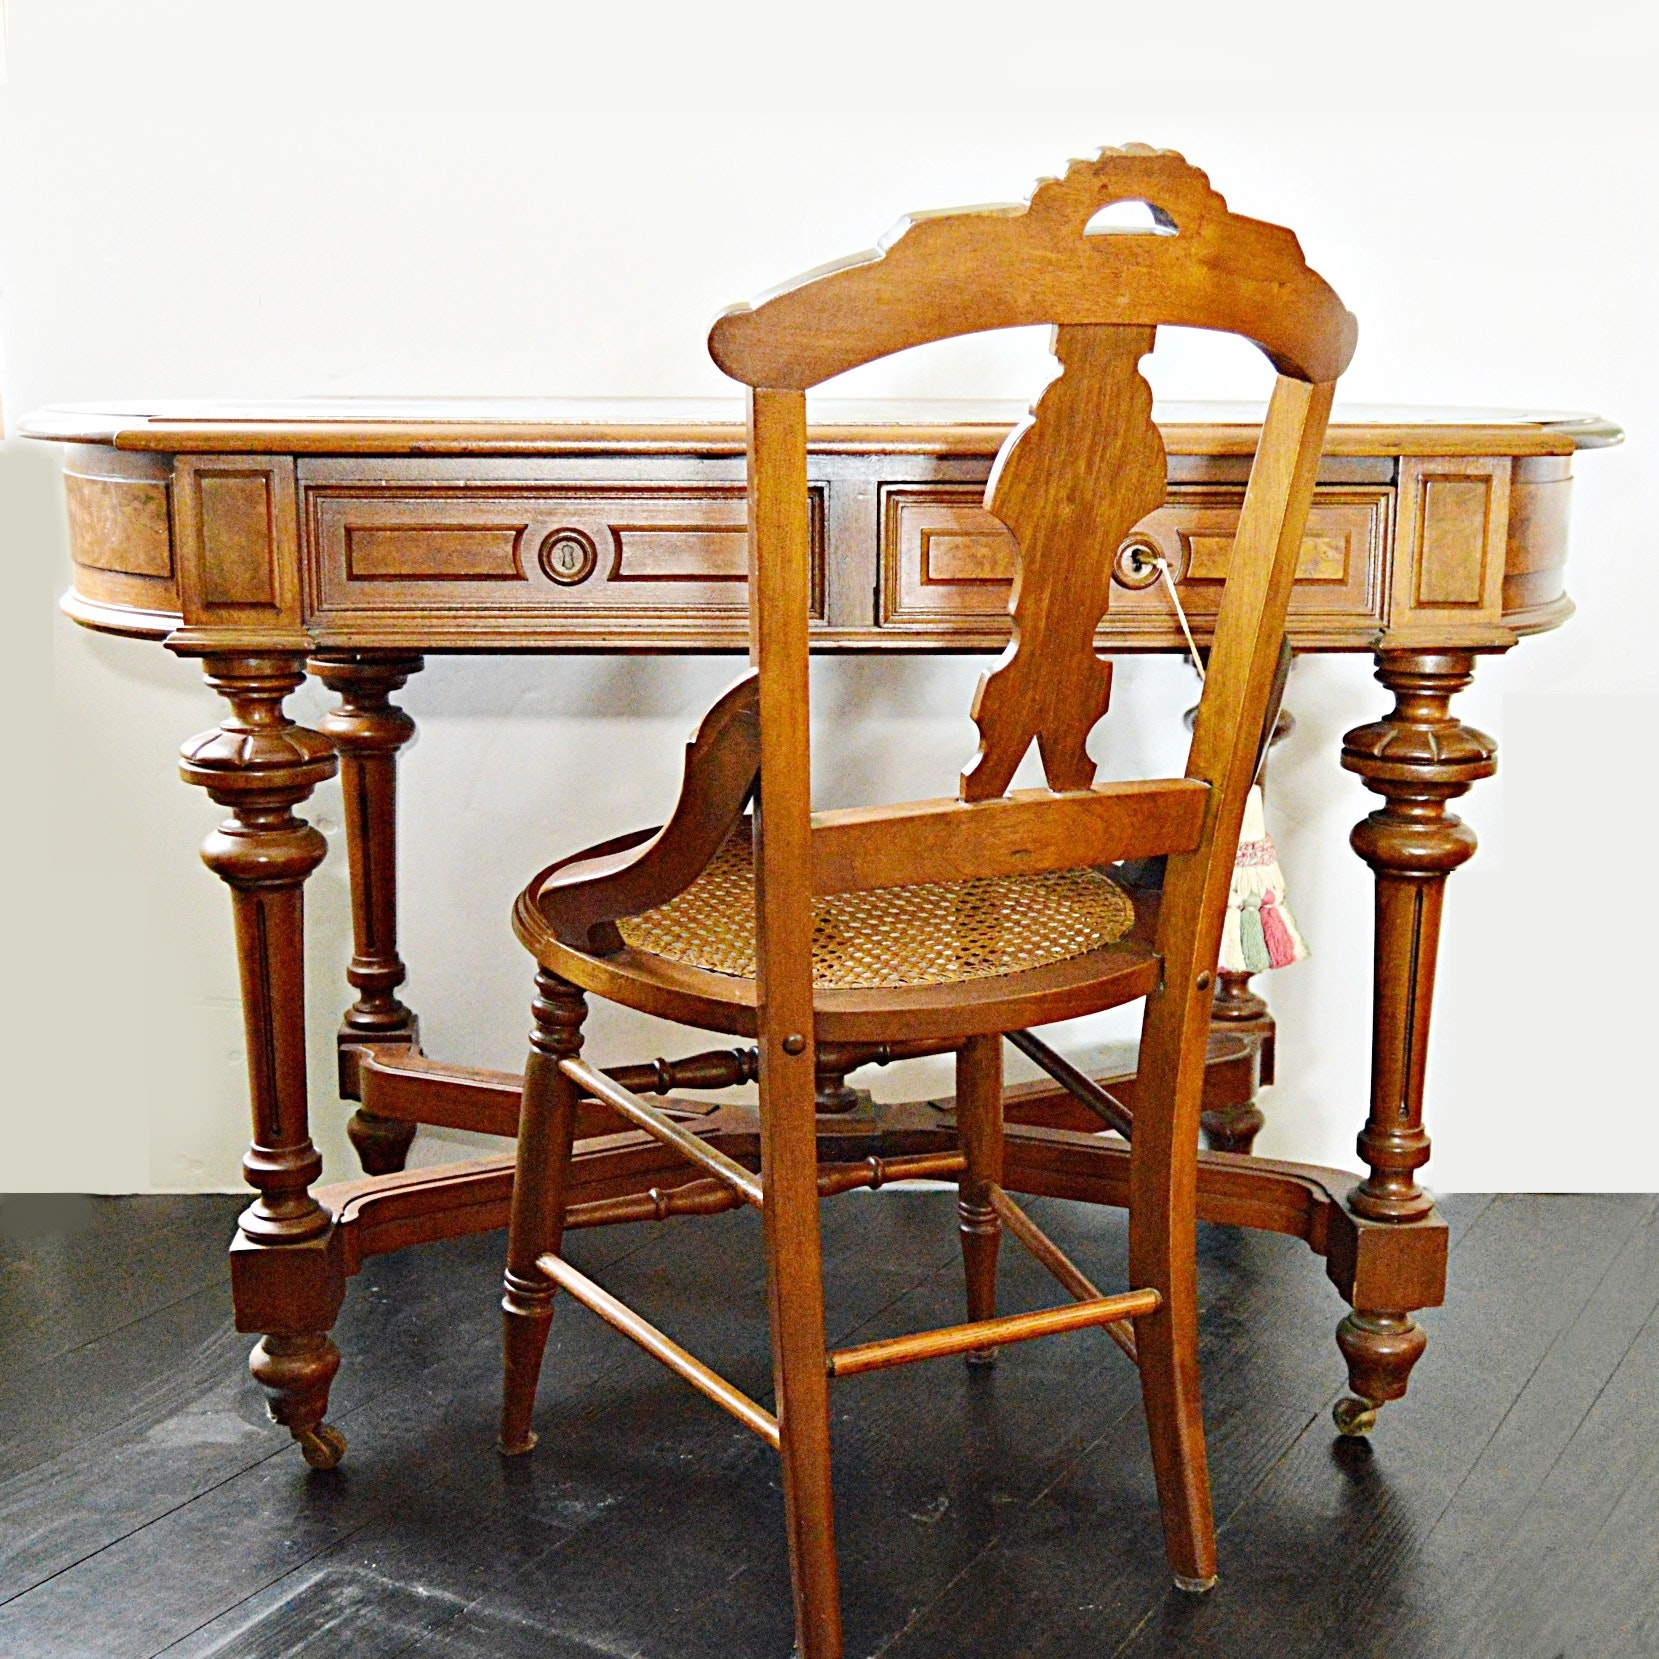 Victorian Eastlake Walnut Partner's Table Desk and Chair